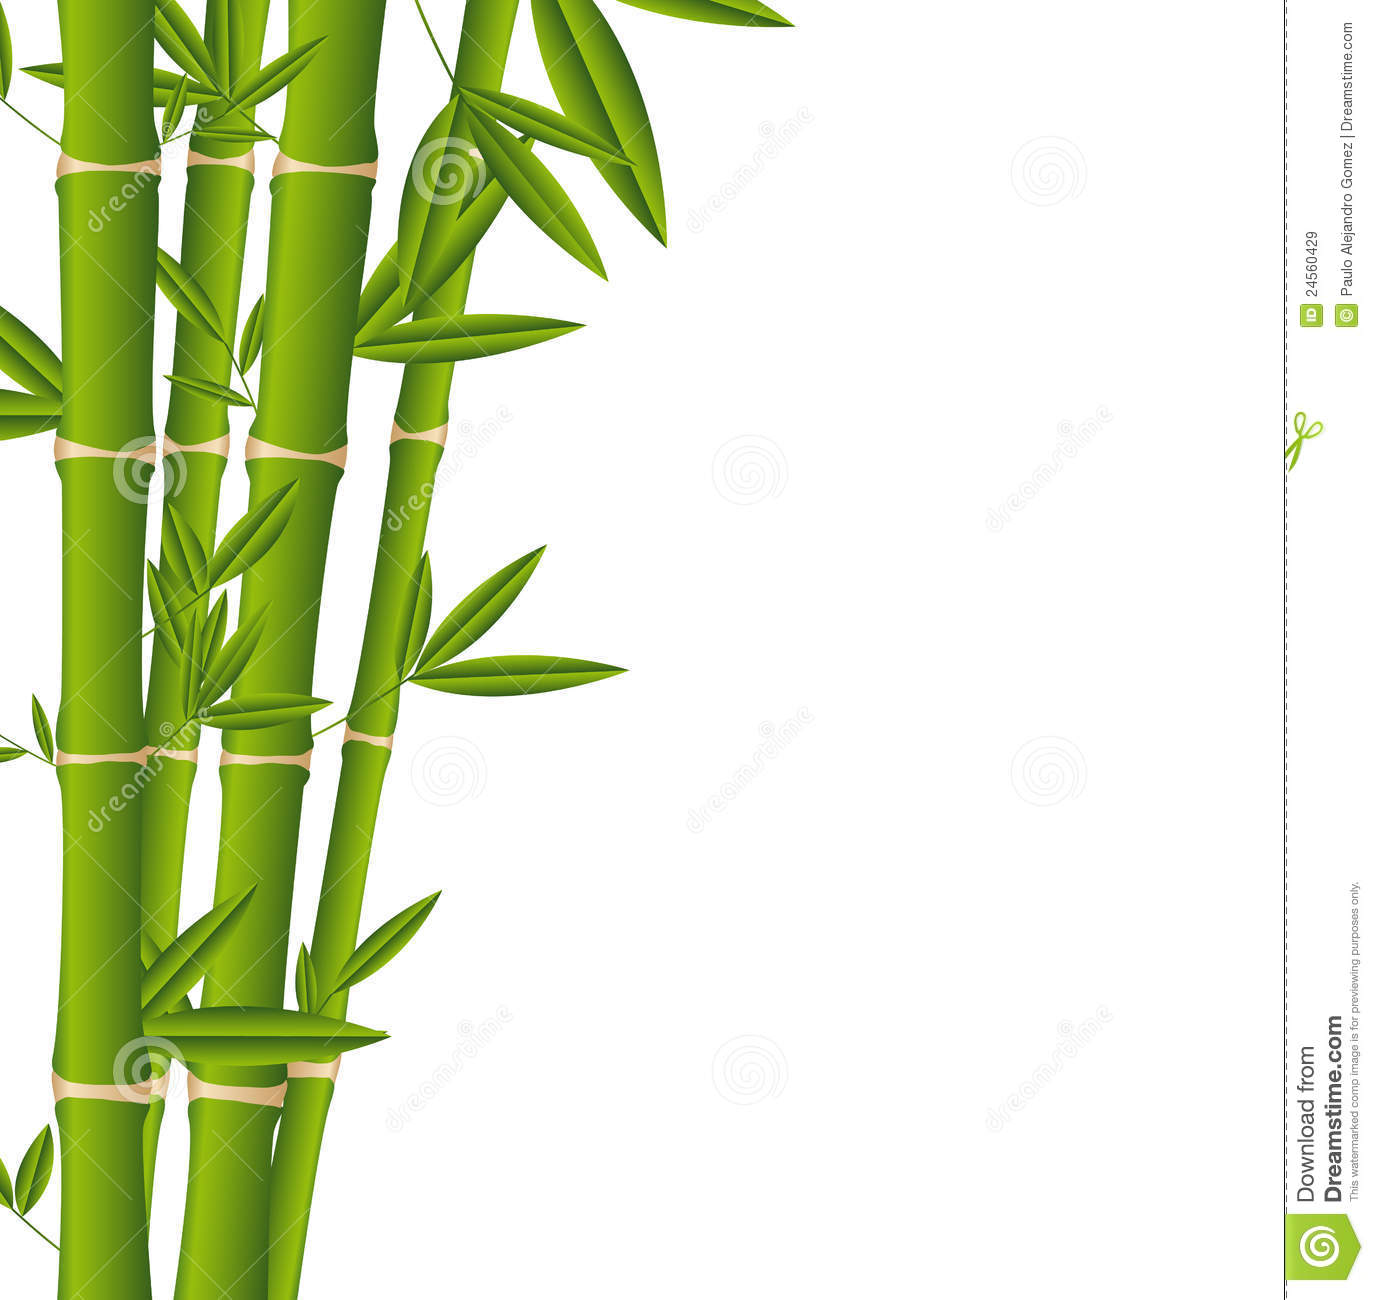 Bamboo royalty free stock images image